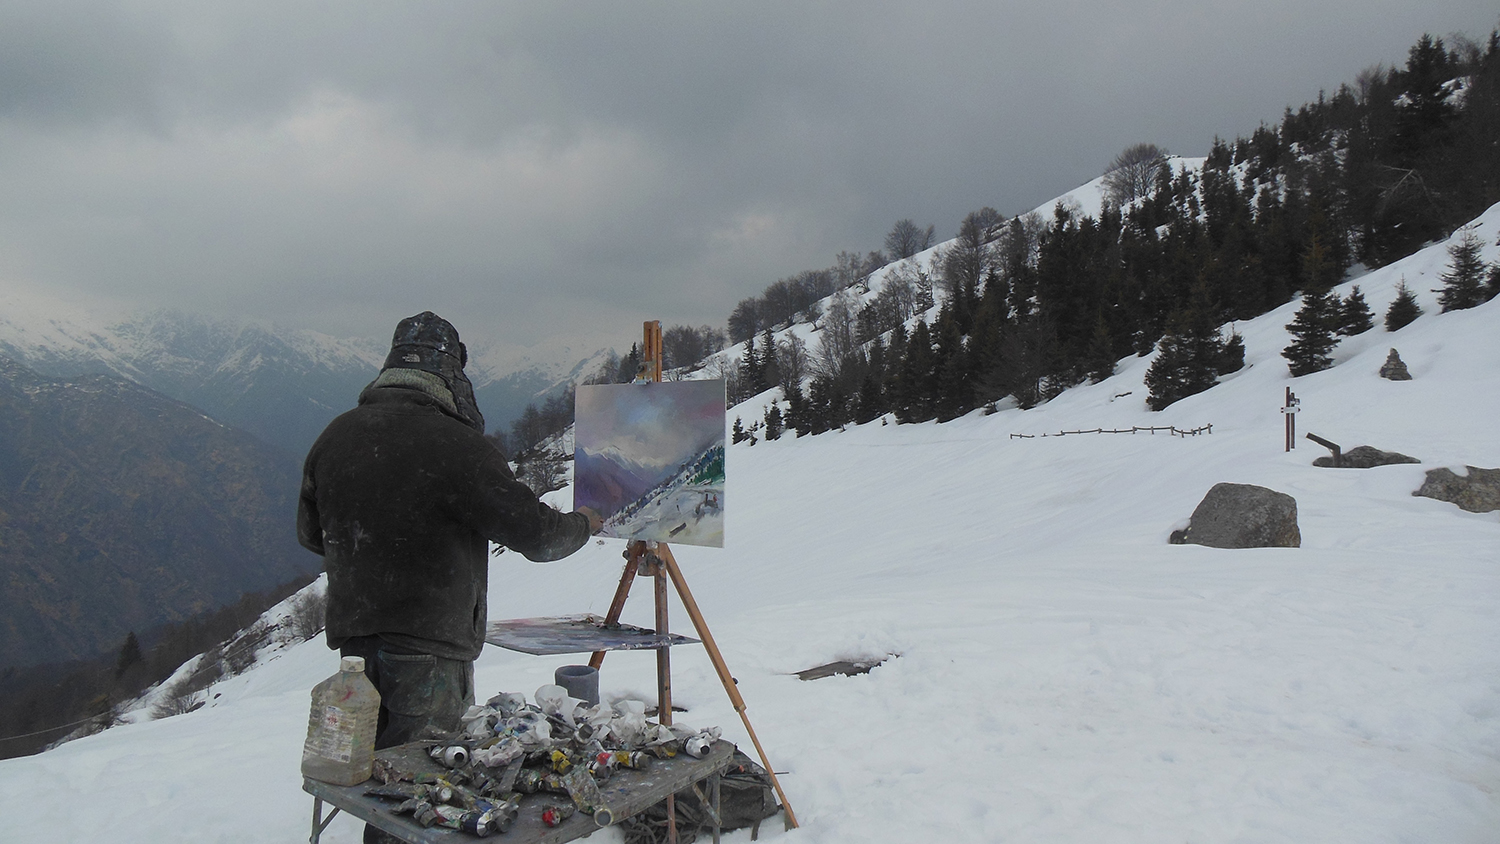 Painting the stunning, panoramic view towards Monta Rosa from Mosso in Italy. It looks a lot colder that it actually was. It was so quiet too. This is my second trip to this region of Piedmont in Northern Italy and the winter conditions have provided a much different experience and challenge from the ones encountered last spring. I am here for a few weeks to further explore the region and revisit some of the places that inspired me last time. ( daivd-atkins.com ).  My thanks to Manuel Capella for sending me the photo.